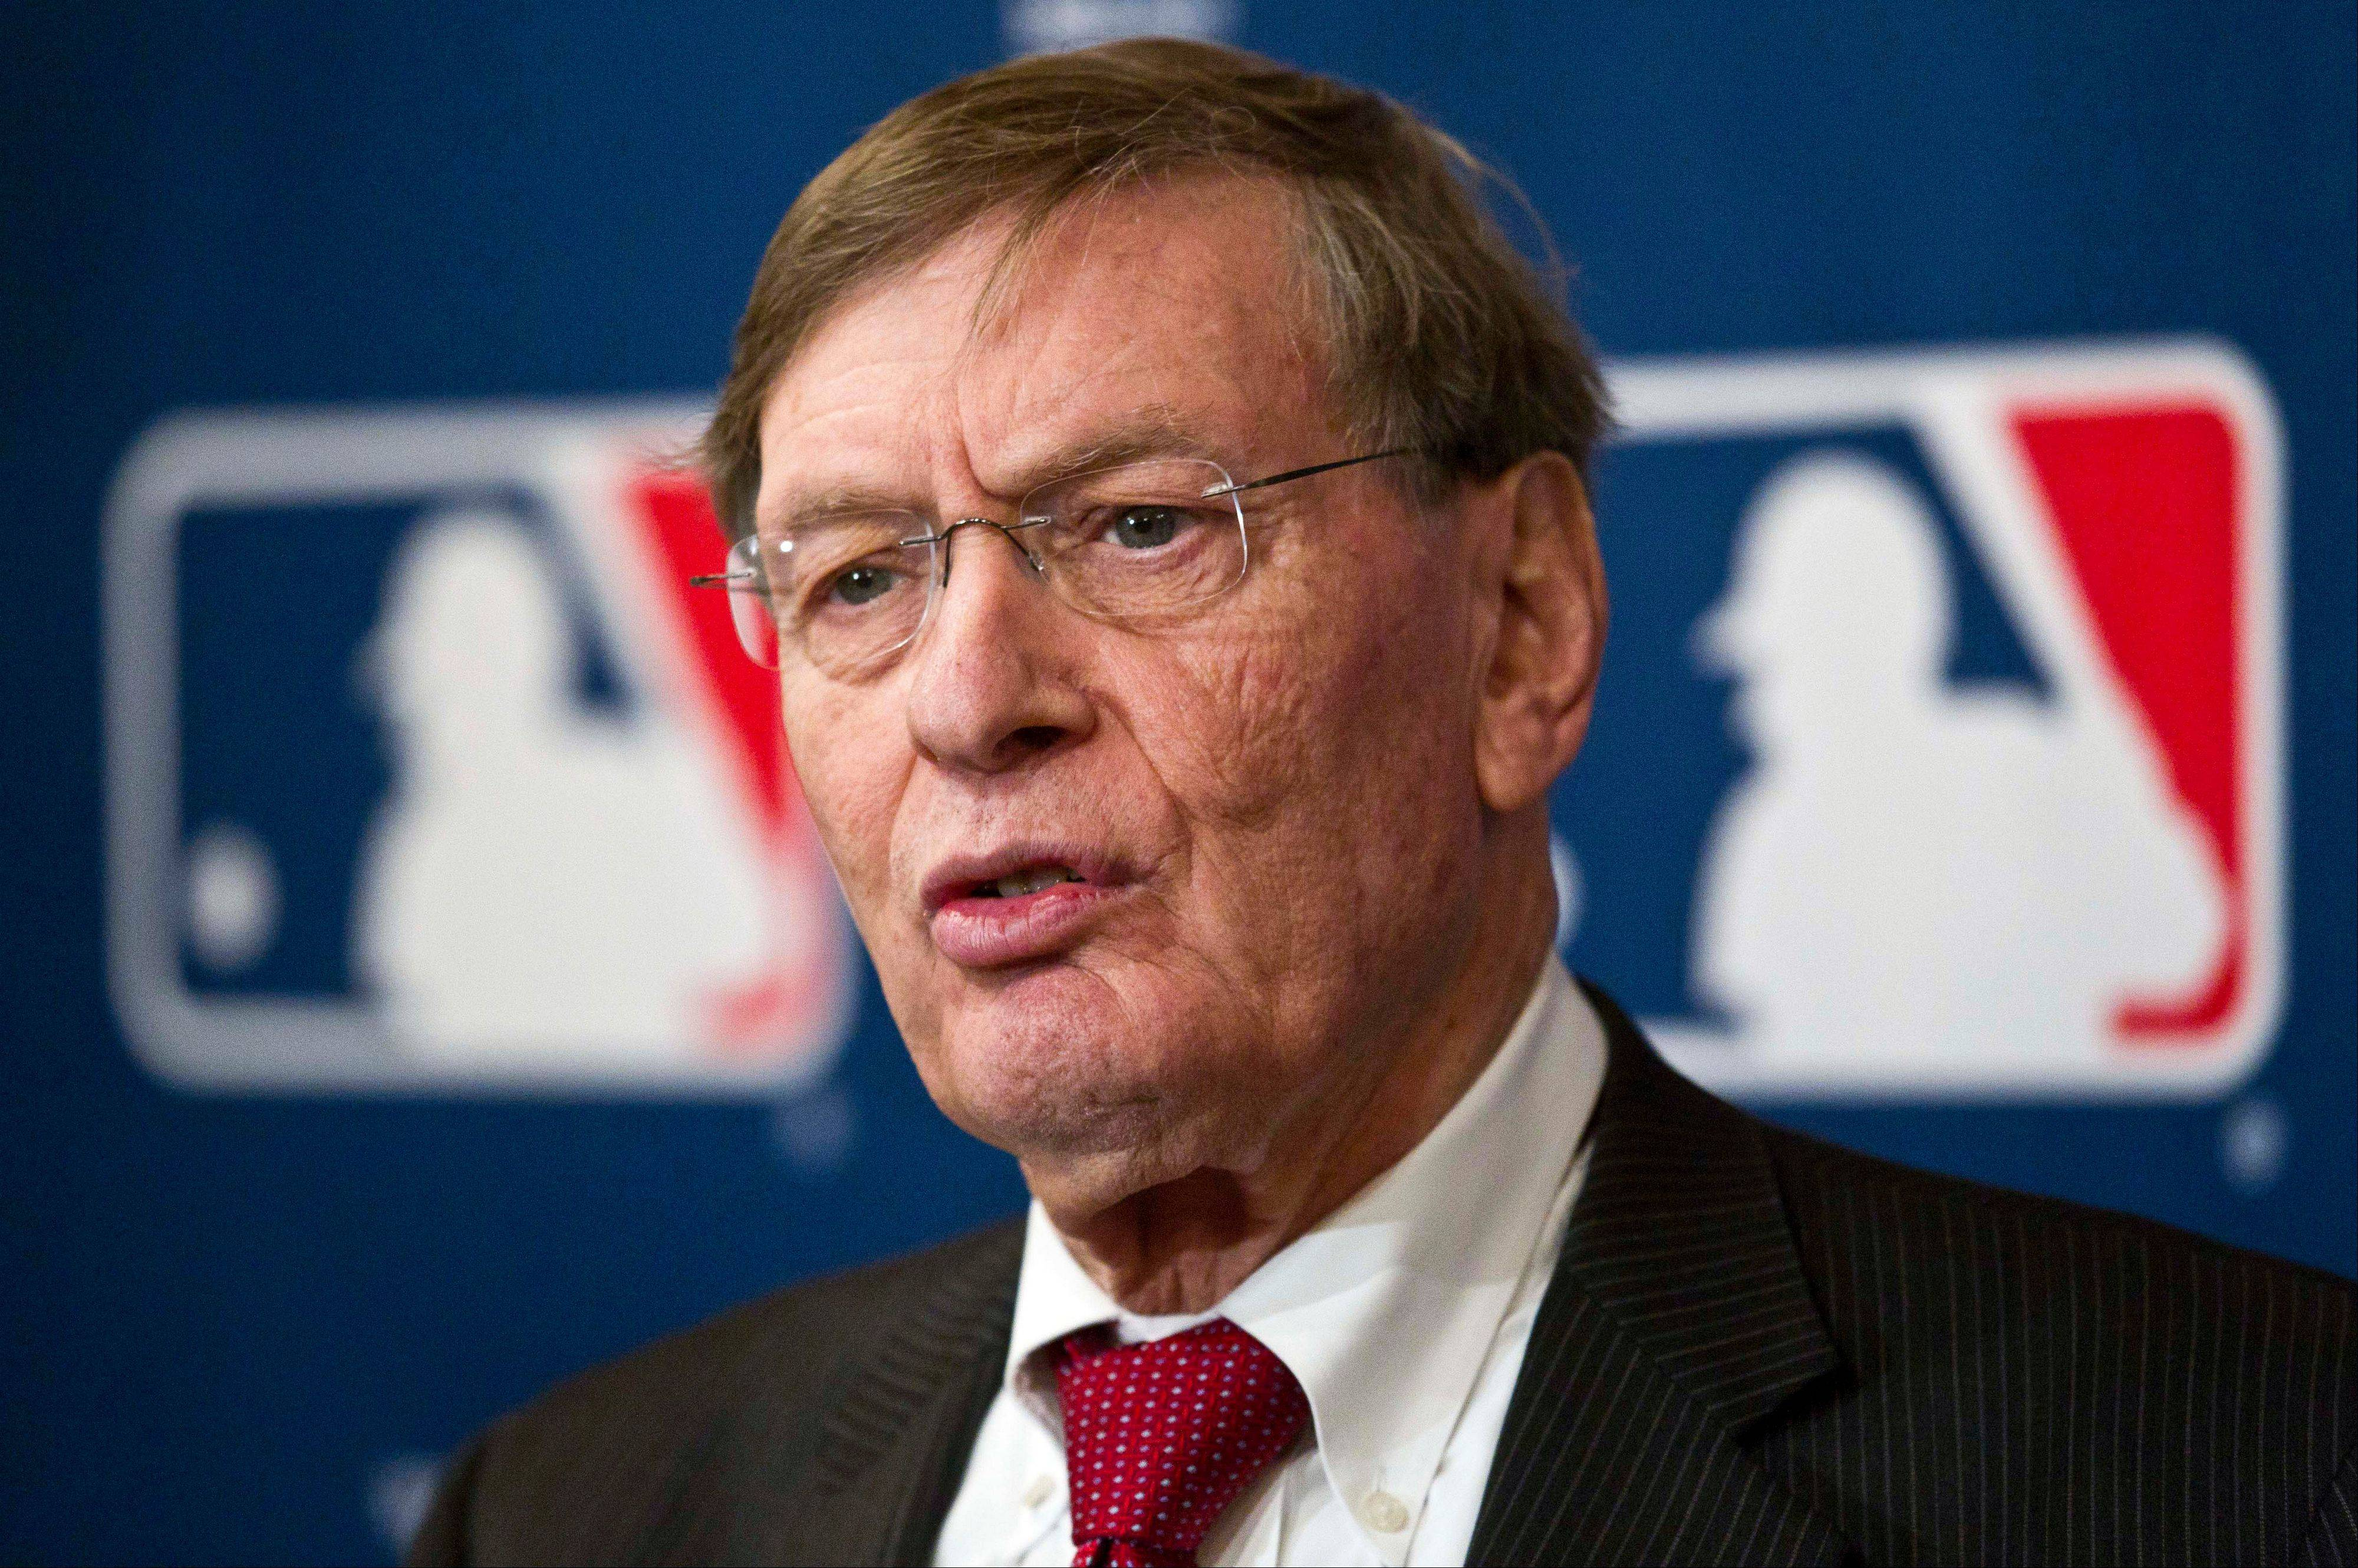 Commissioner Bud Selig has the job, but Len Kasper has some thoughts on what he would do if Selig let he take over for a day.